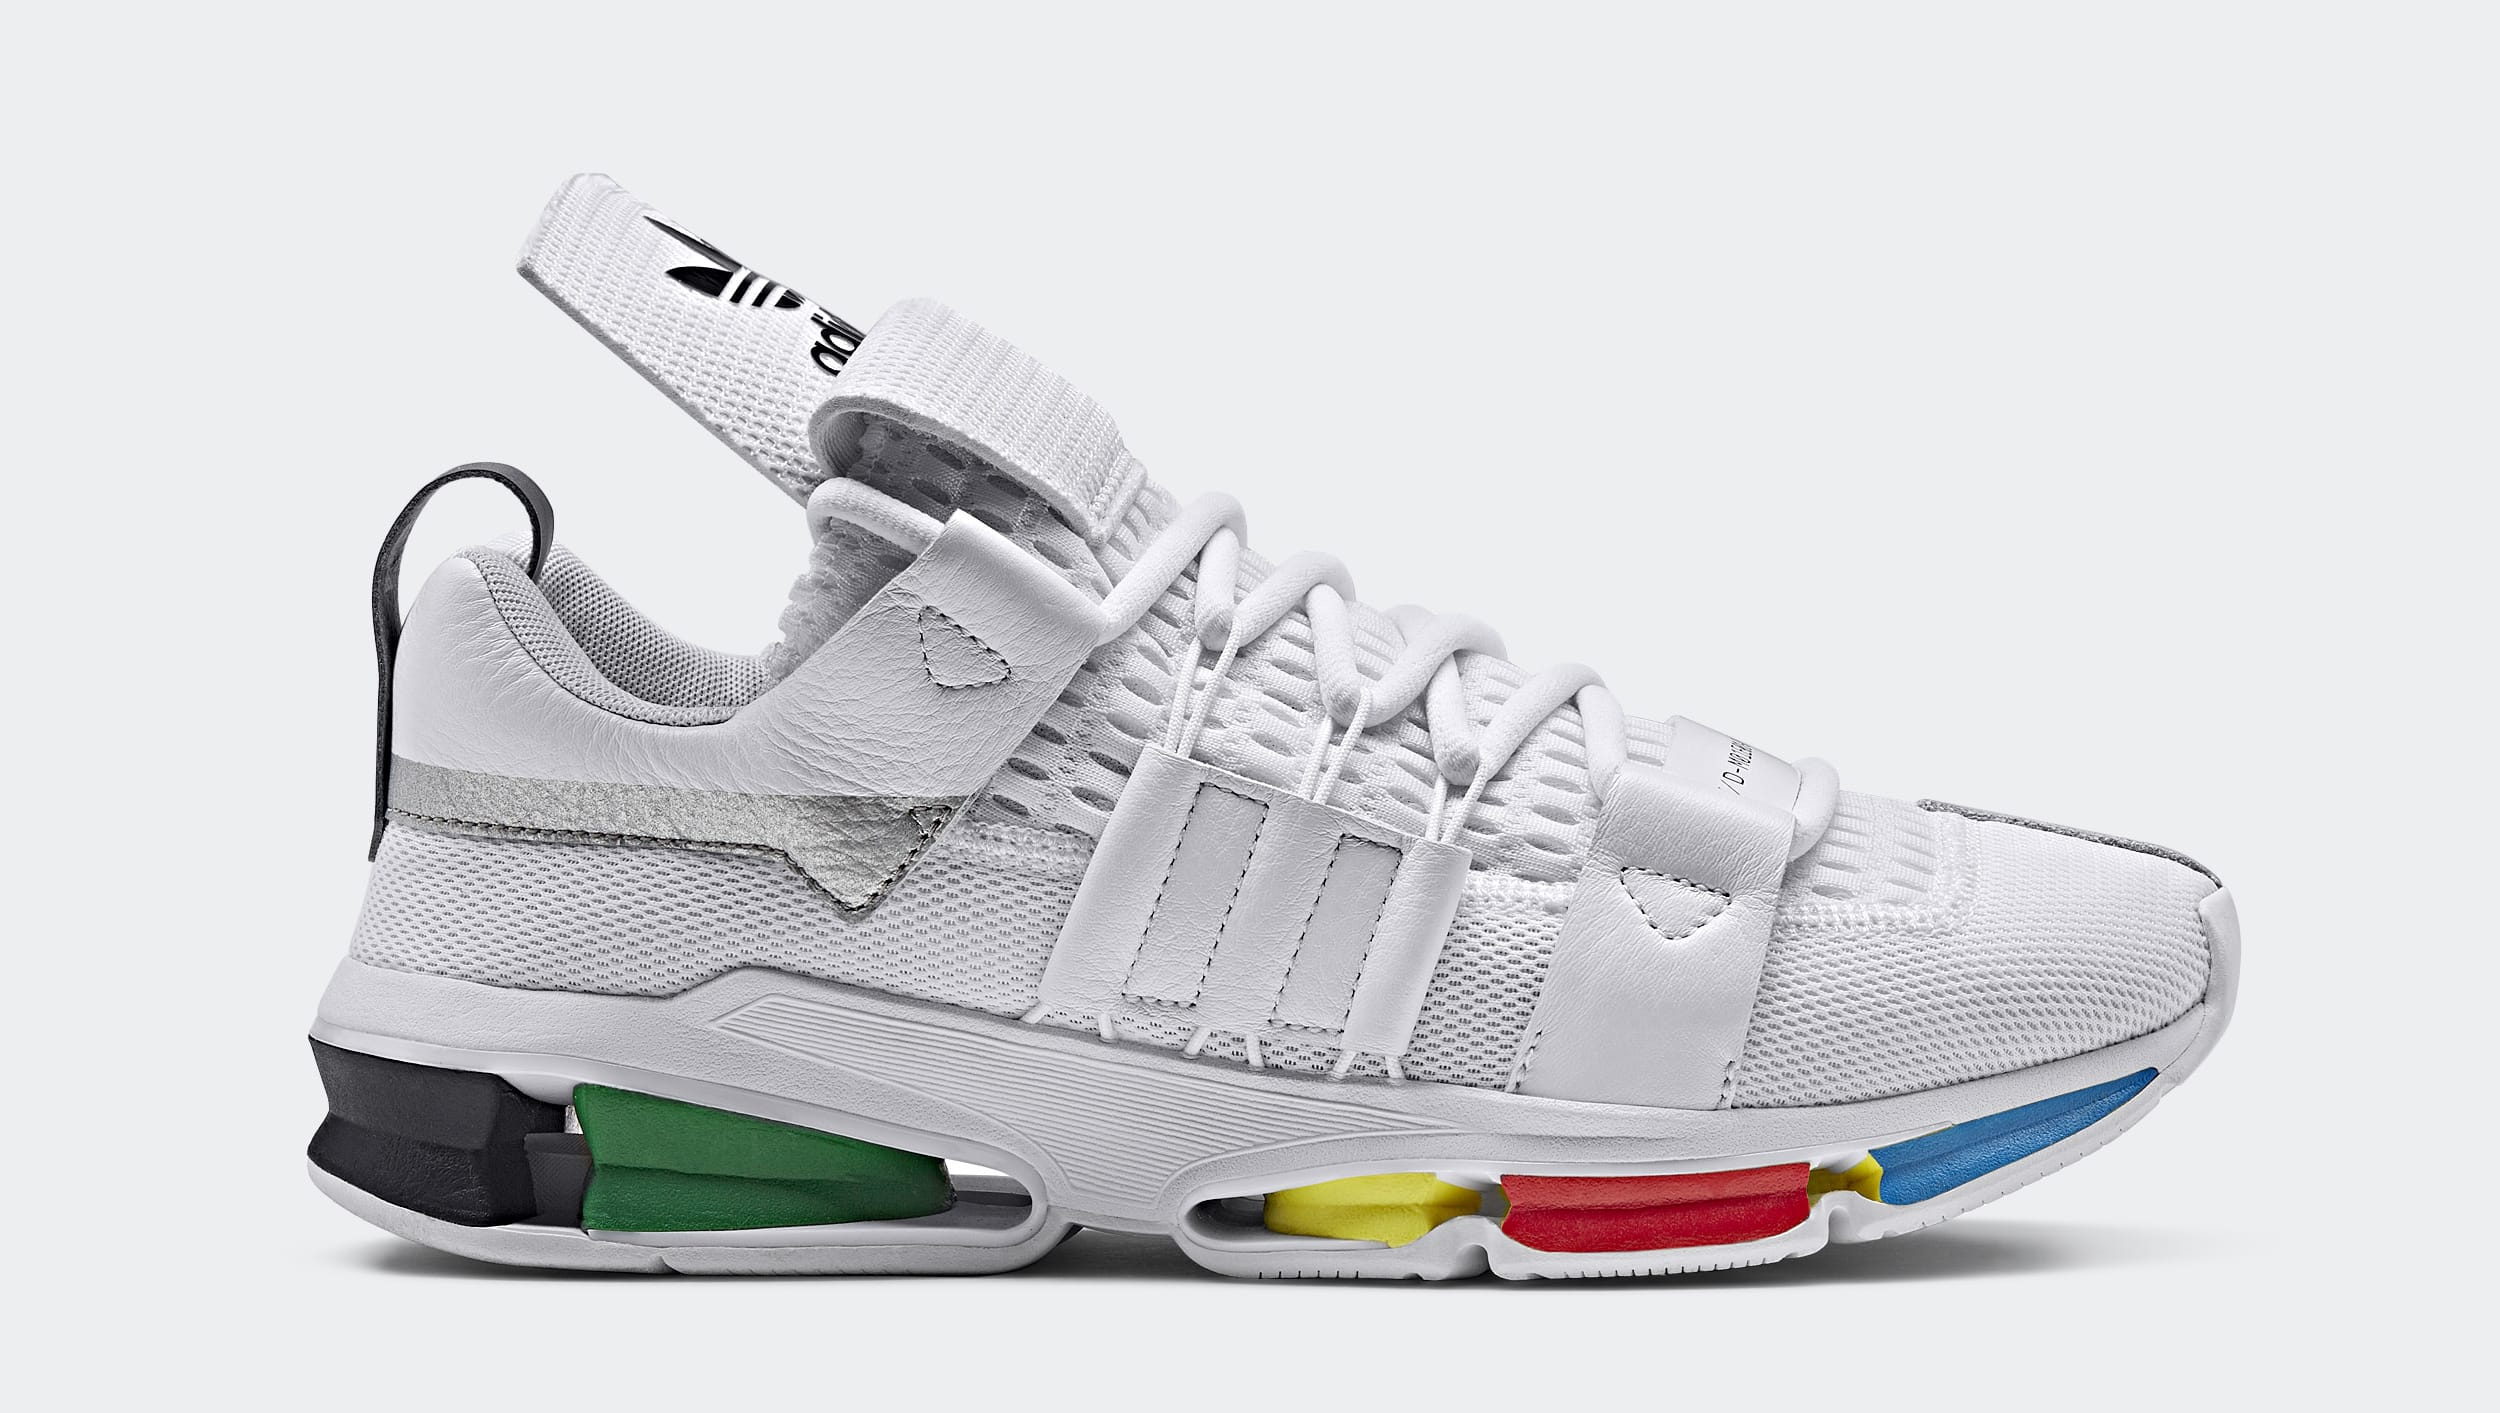 Oyster Holdings x Adidas Twinstrike ADV BD7262 (Lateral)